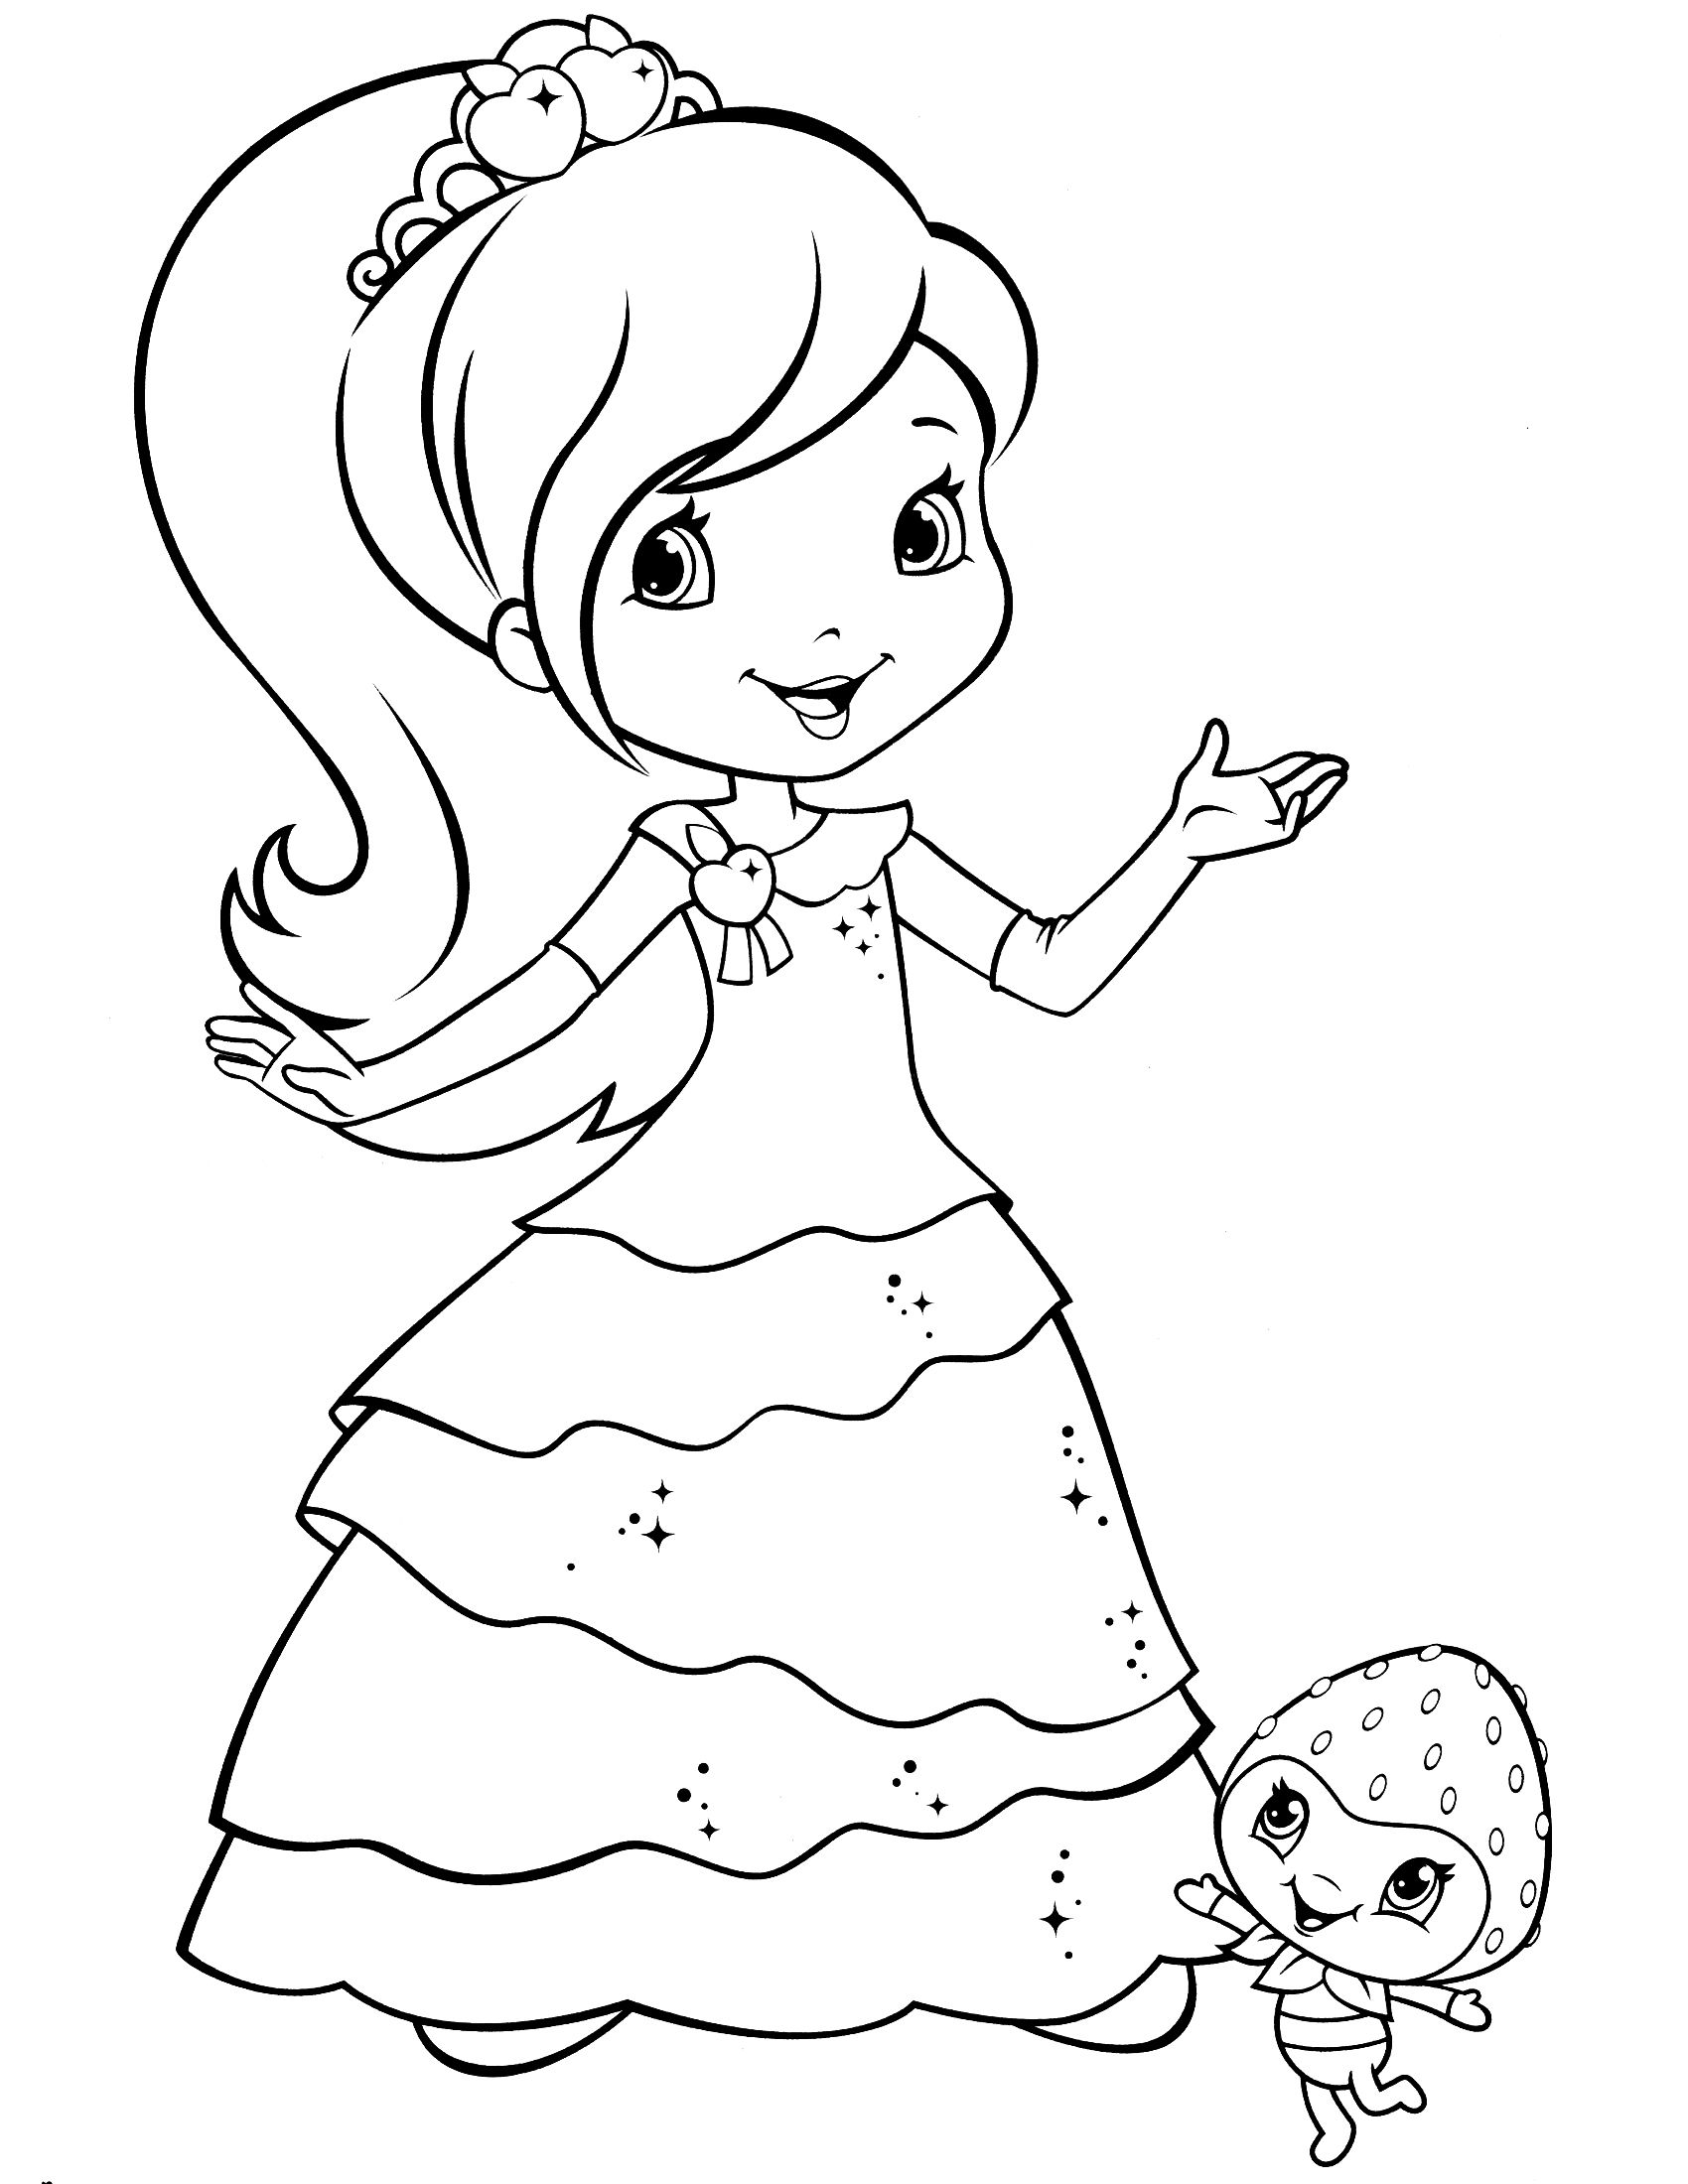 strawberry shortcake coloring page | Strawberry Shortcake ...